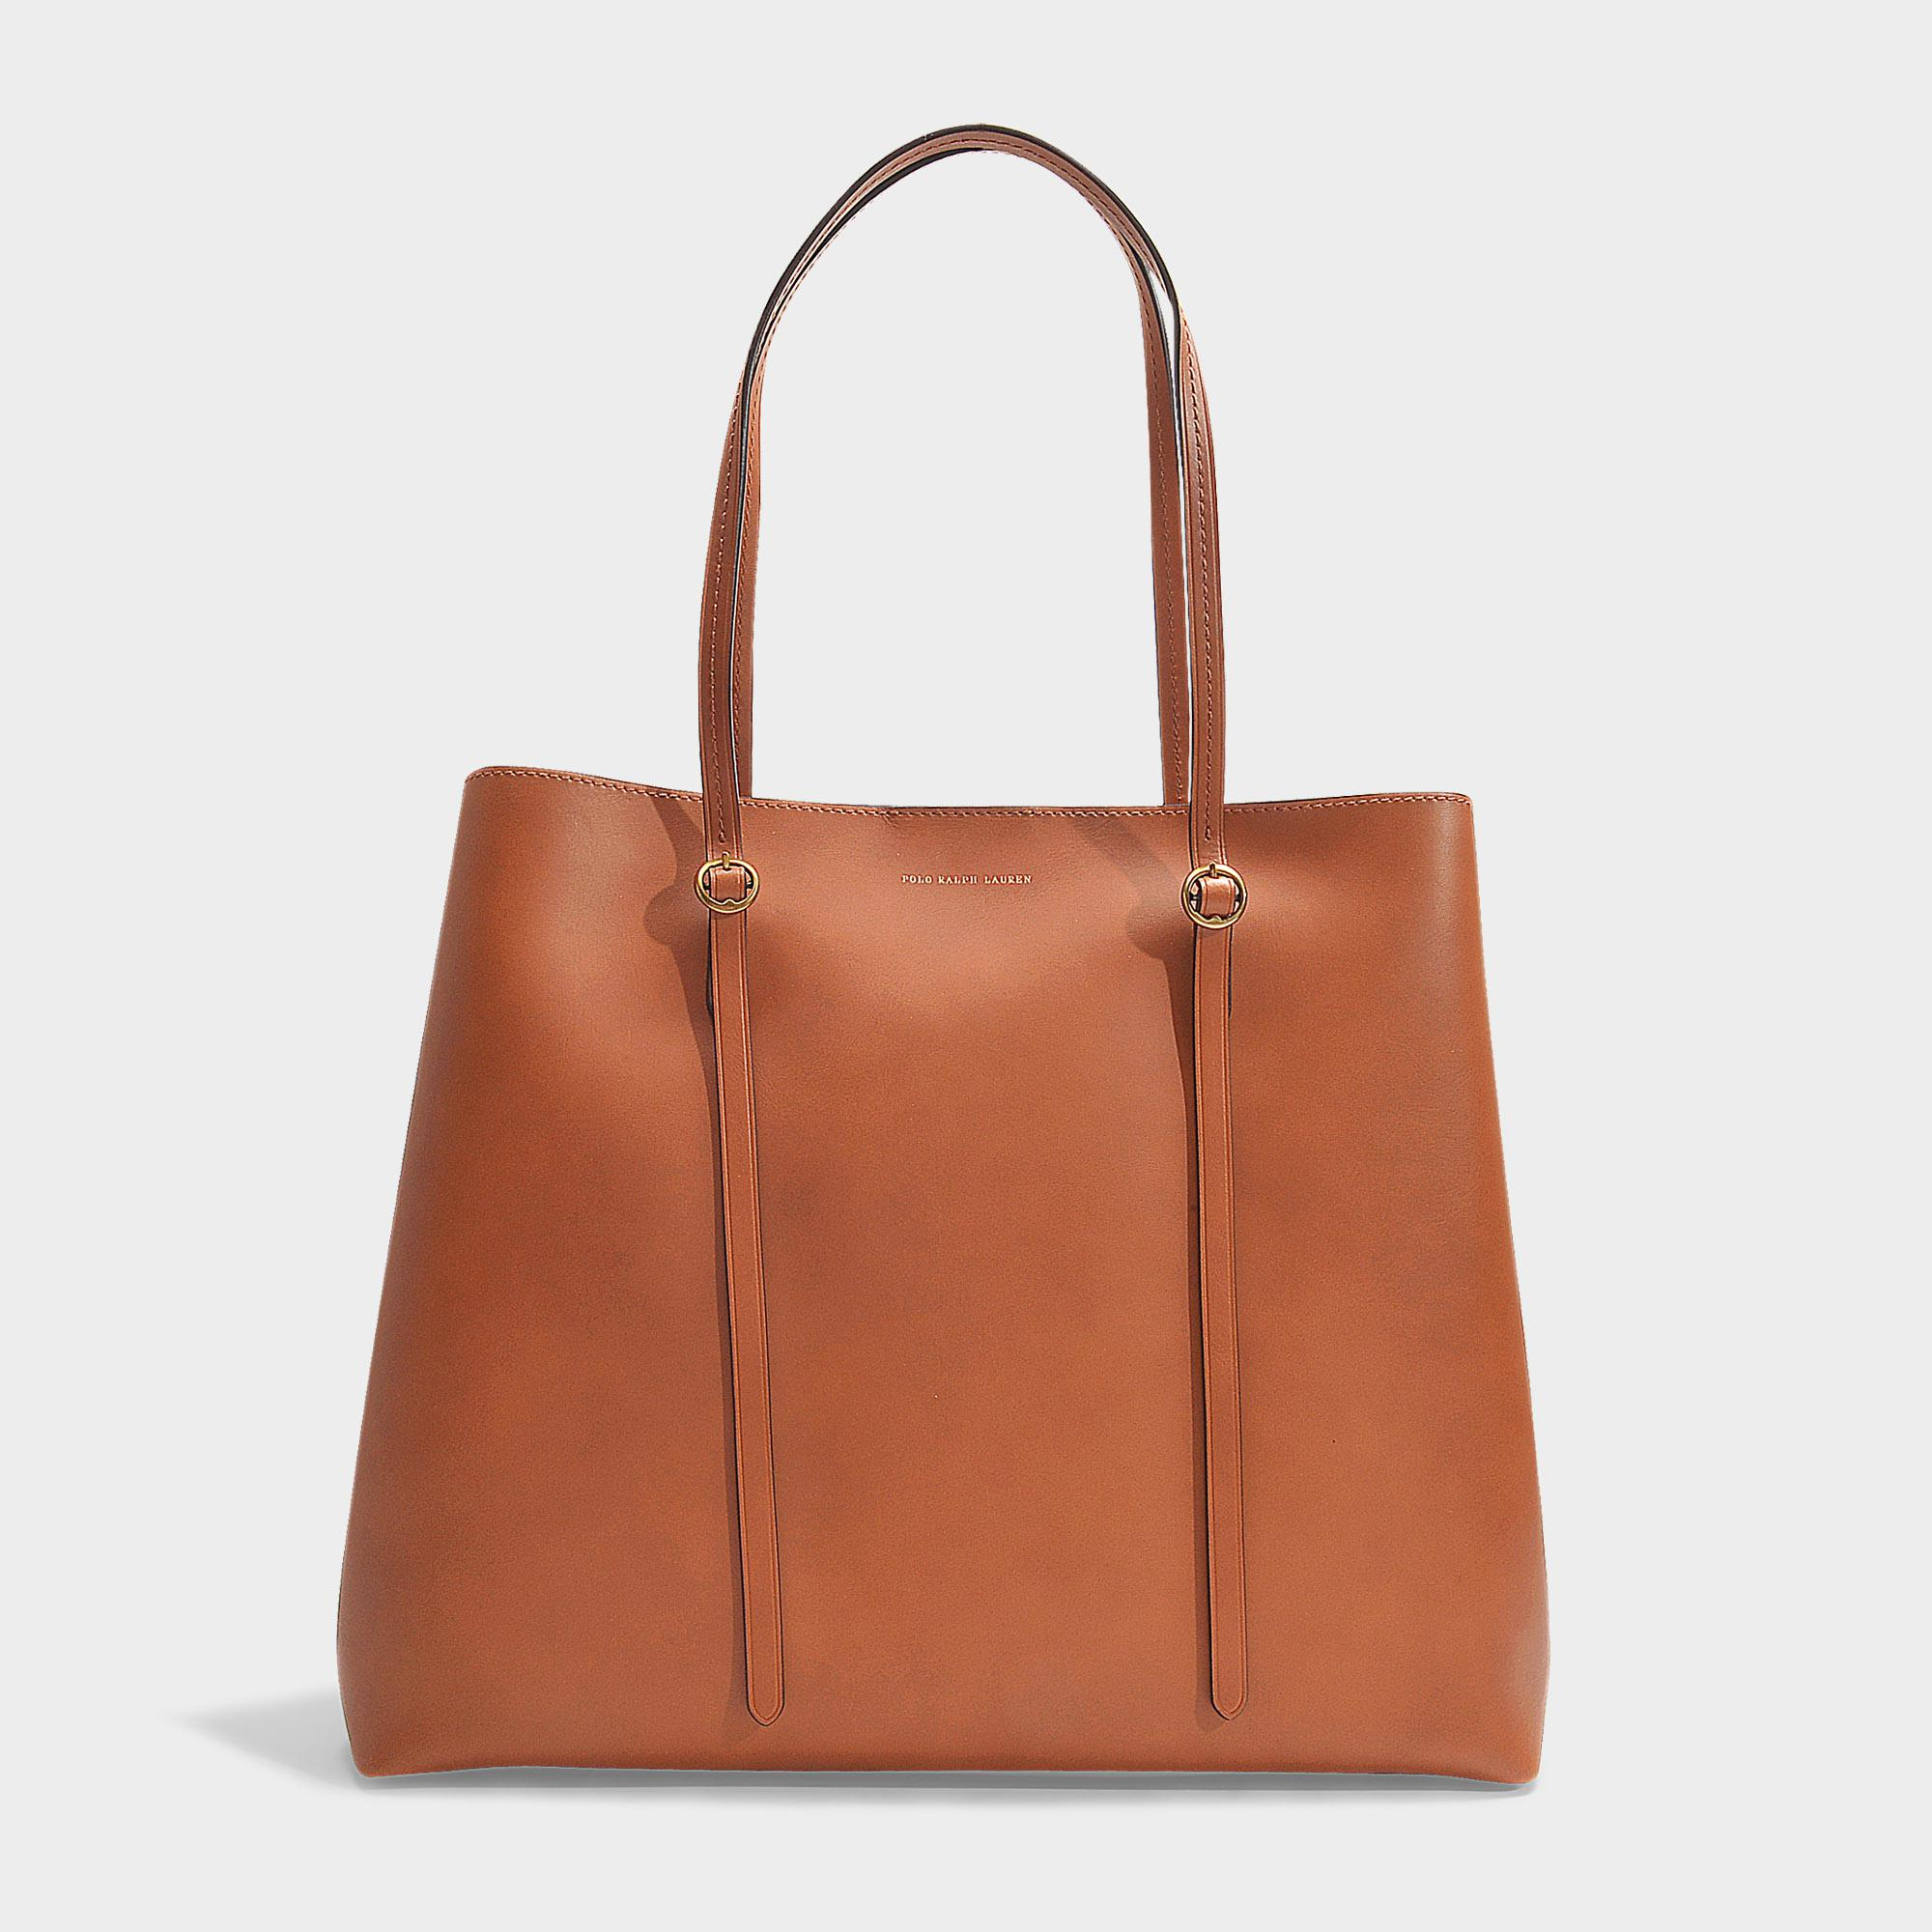 5cdc21b325 Polo Ralph Lauren Lennox Large Tote In Saddle Smooth Leather in ...